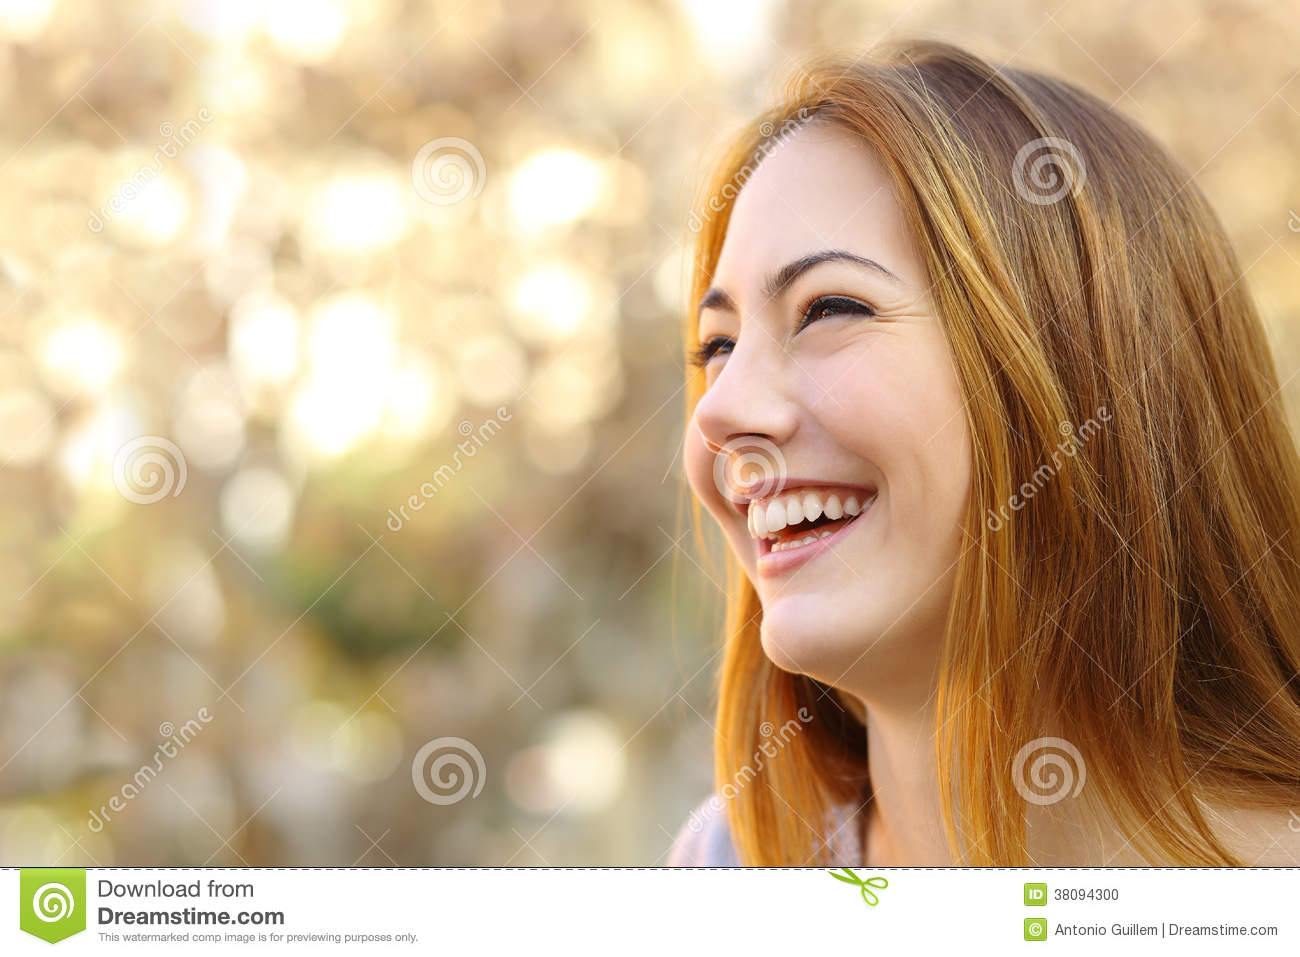 Pics of laughing adult females